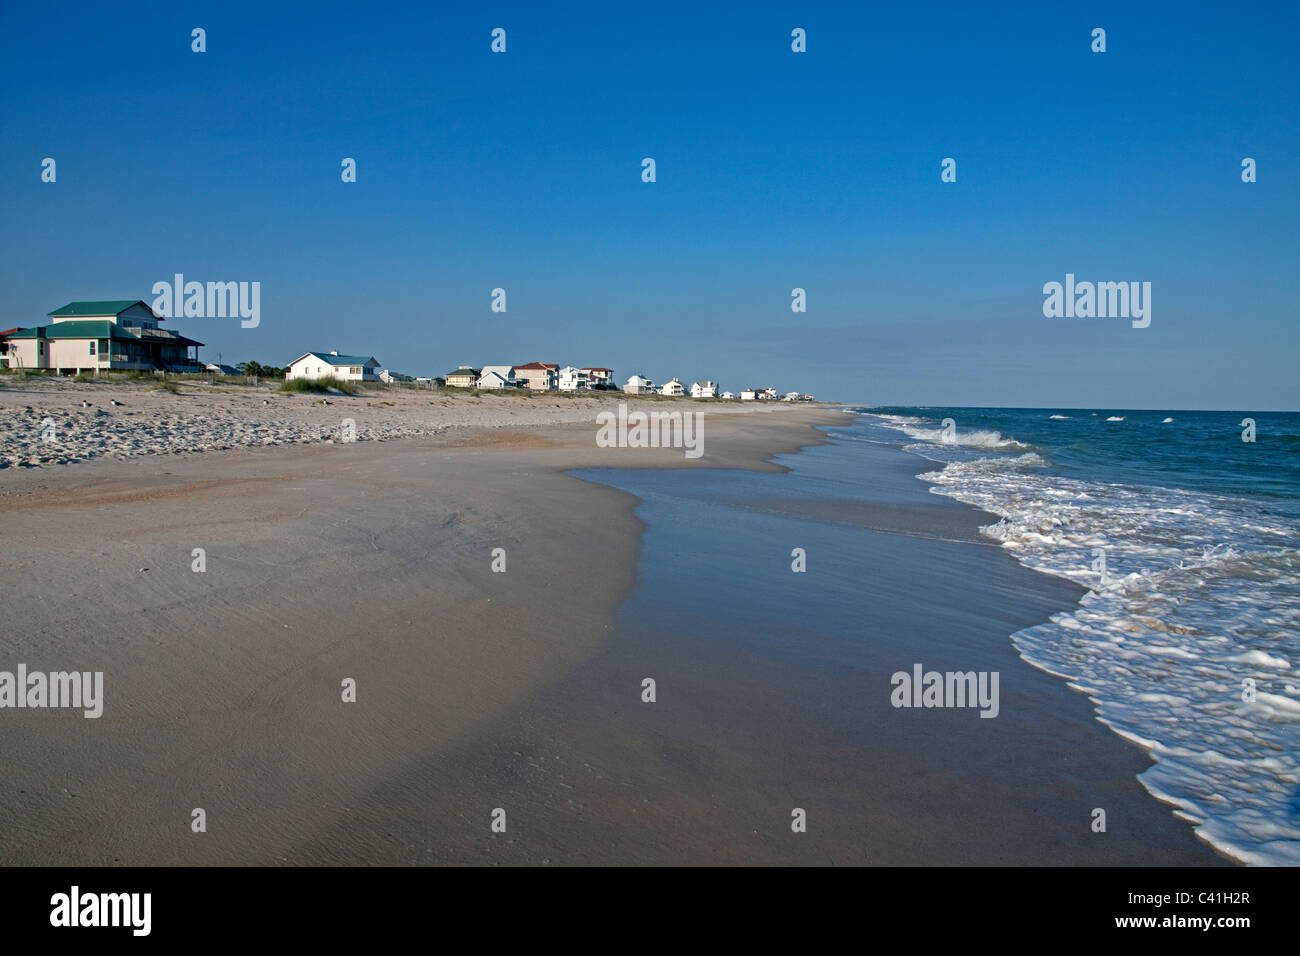 Housing development along Gulf of Mexico St George Island Florida USA - Stock Image